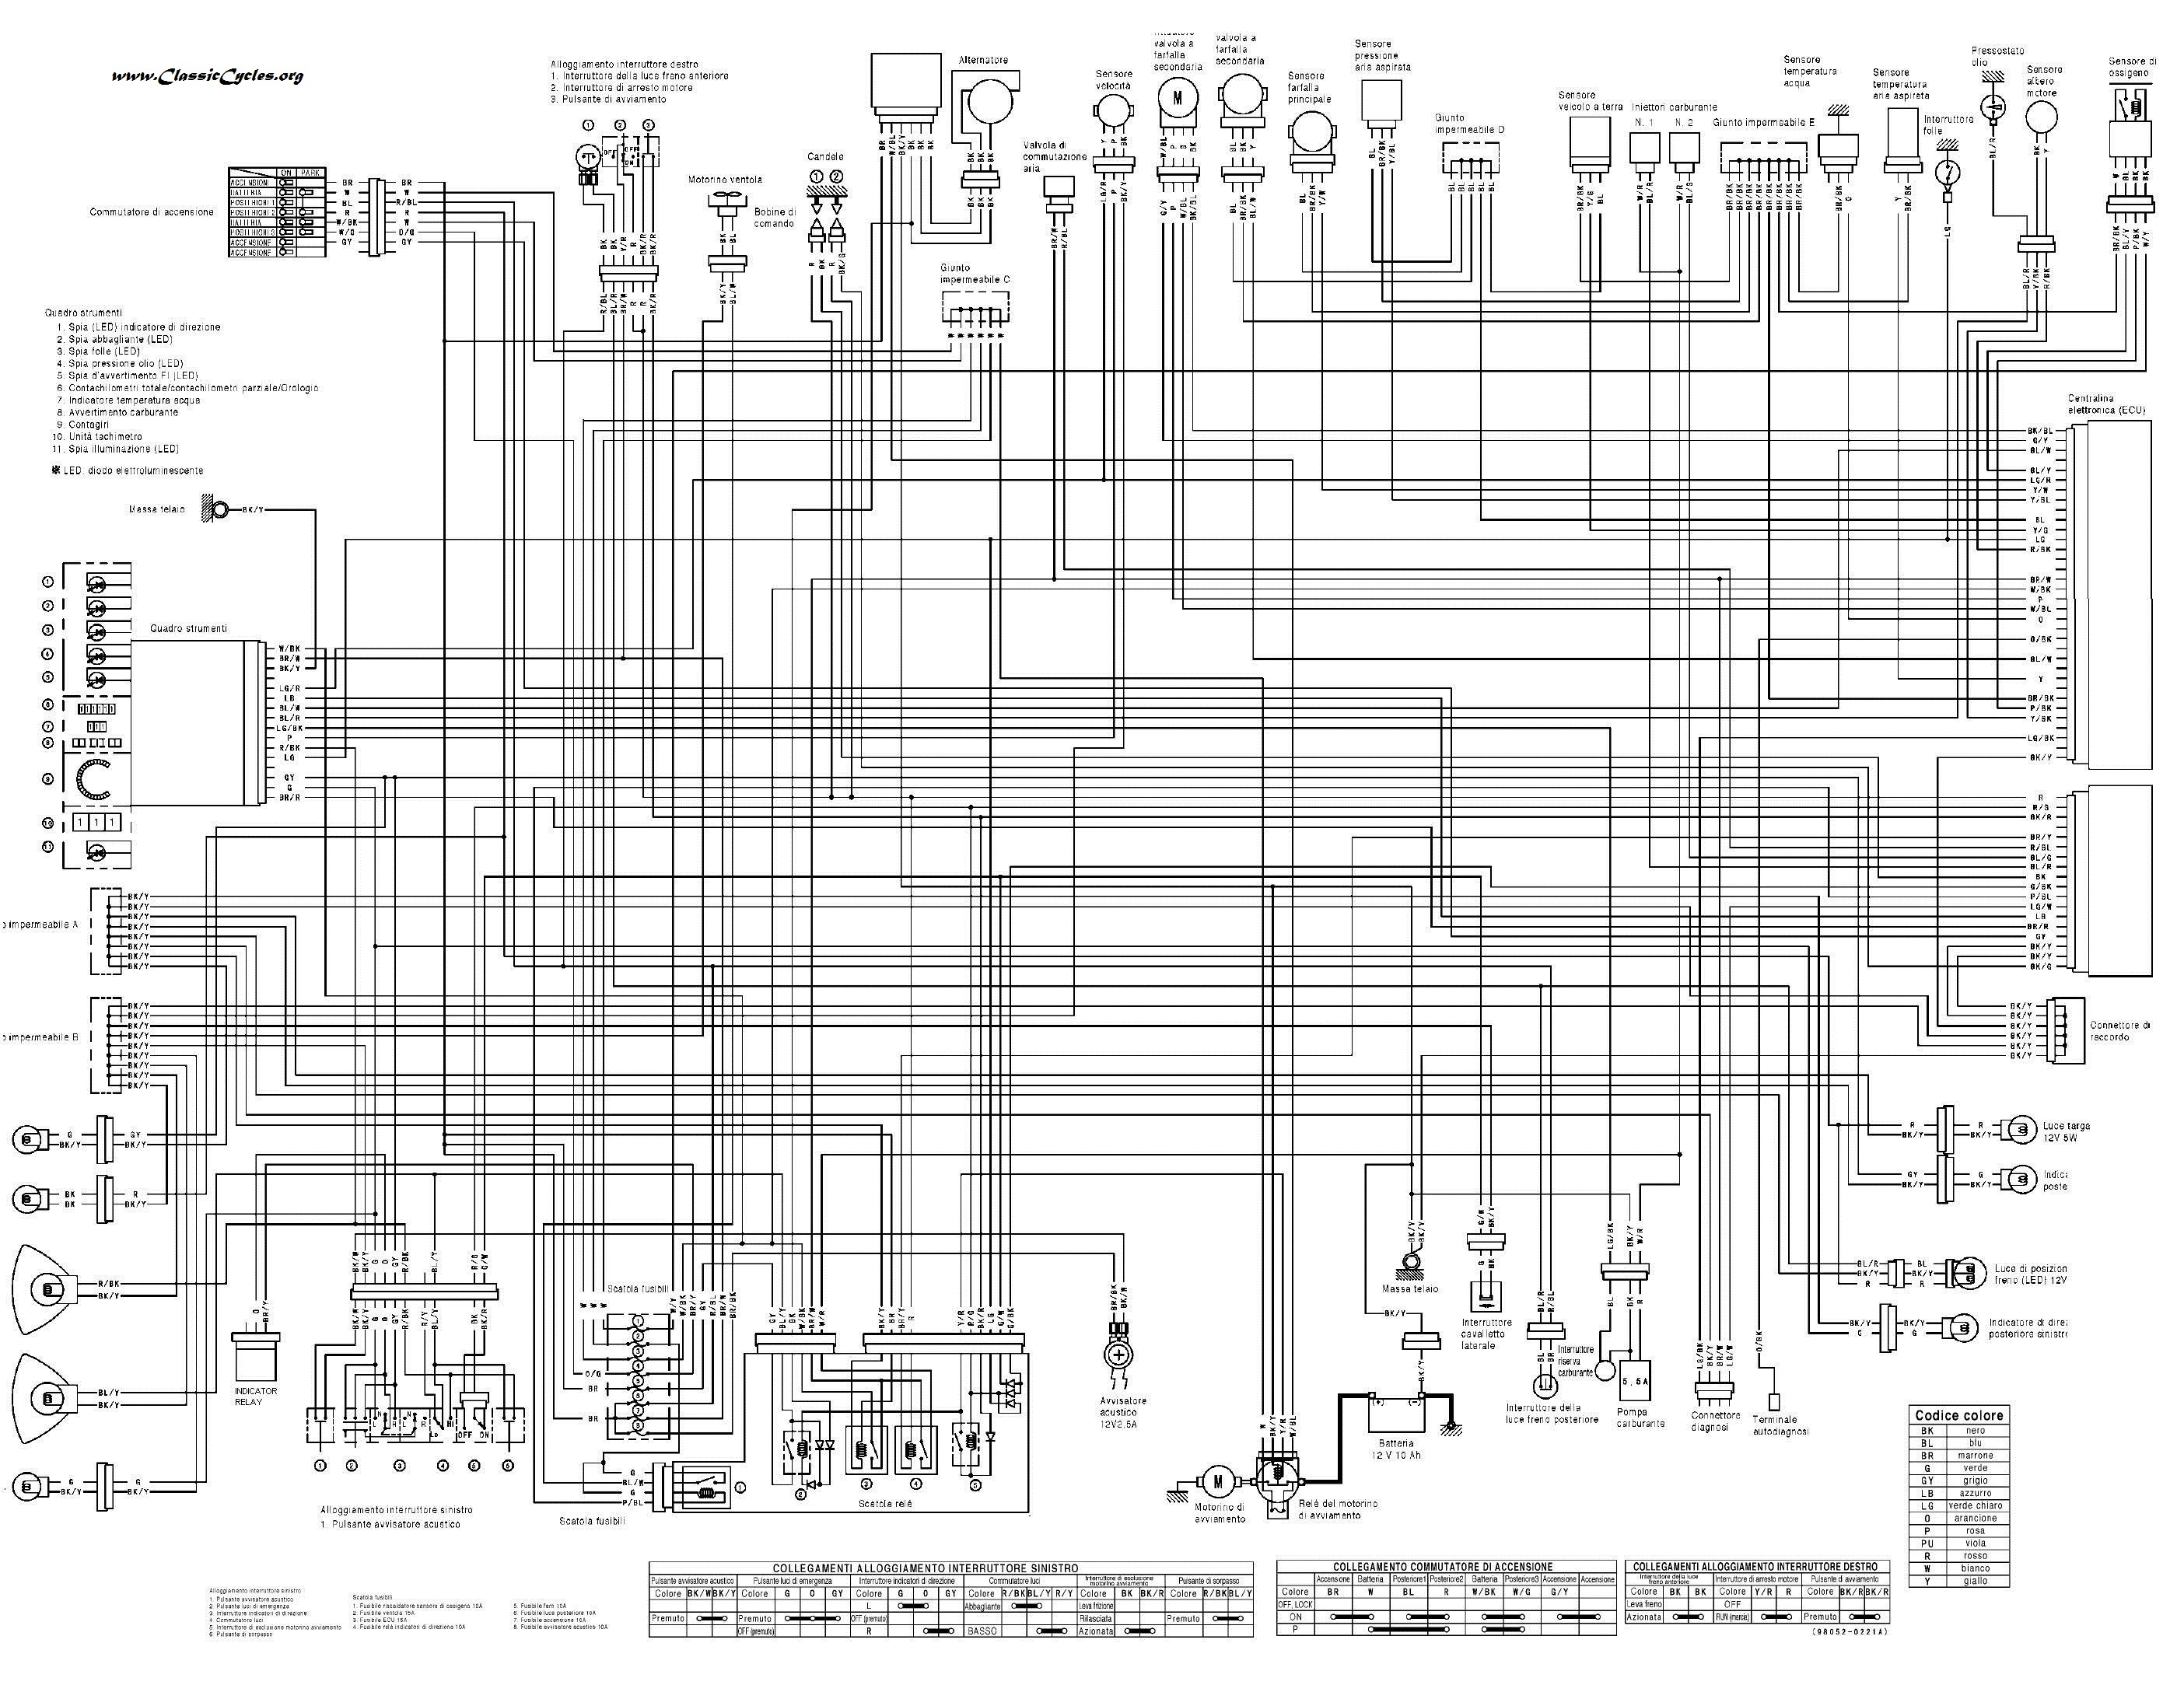 2001 Dodge Ram Wiring Diagram 2003 Dodge Durango Emissions Diagram Free Download Wiring Diagram Of 2001 Dodge Ram Wiring Diagram